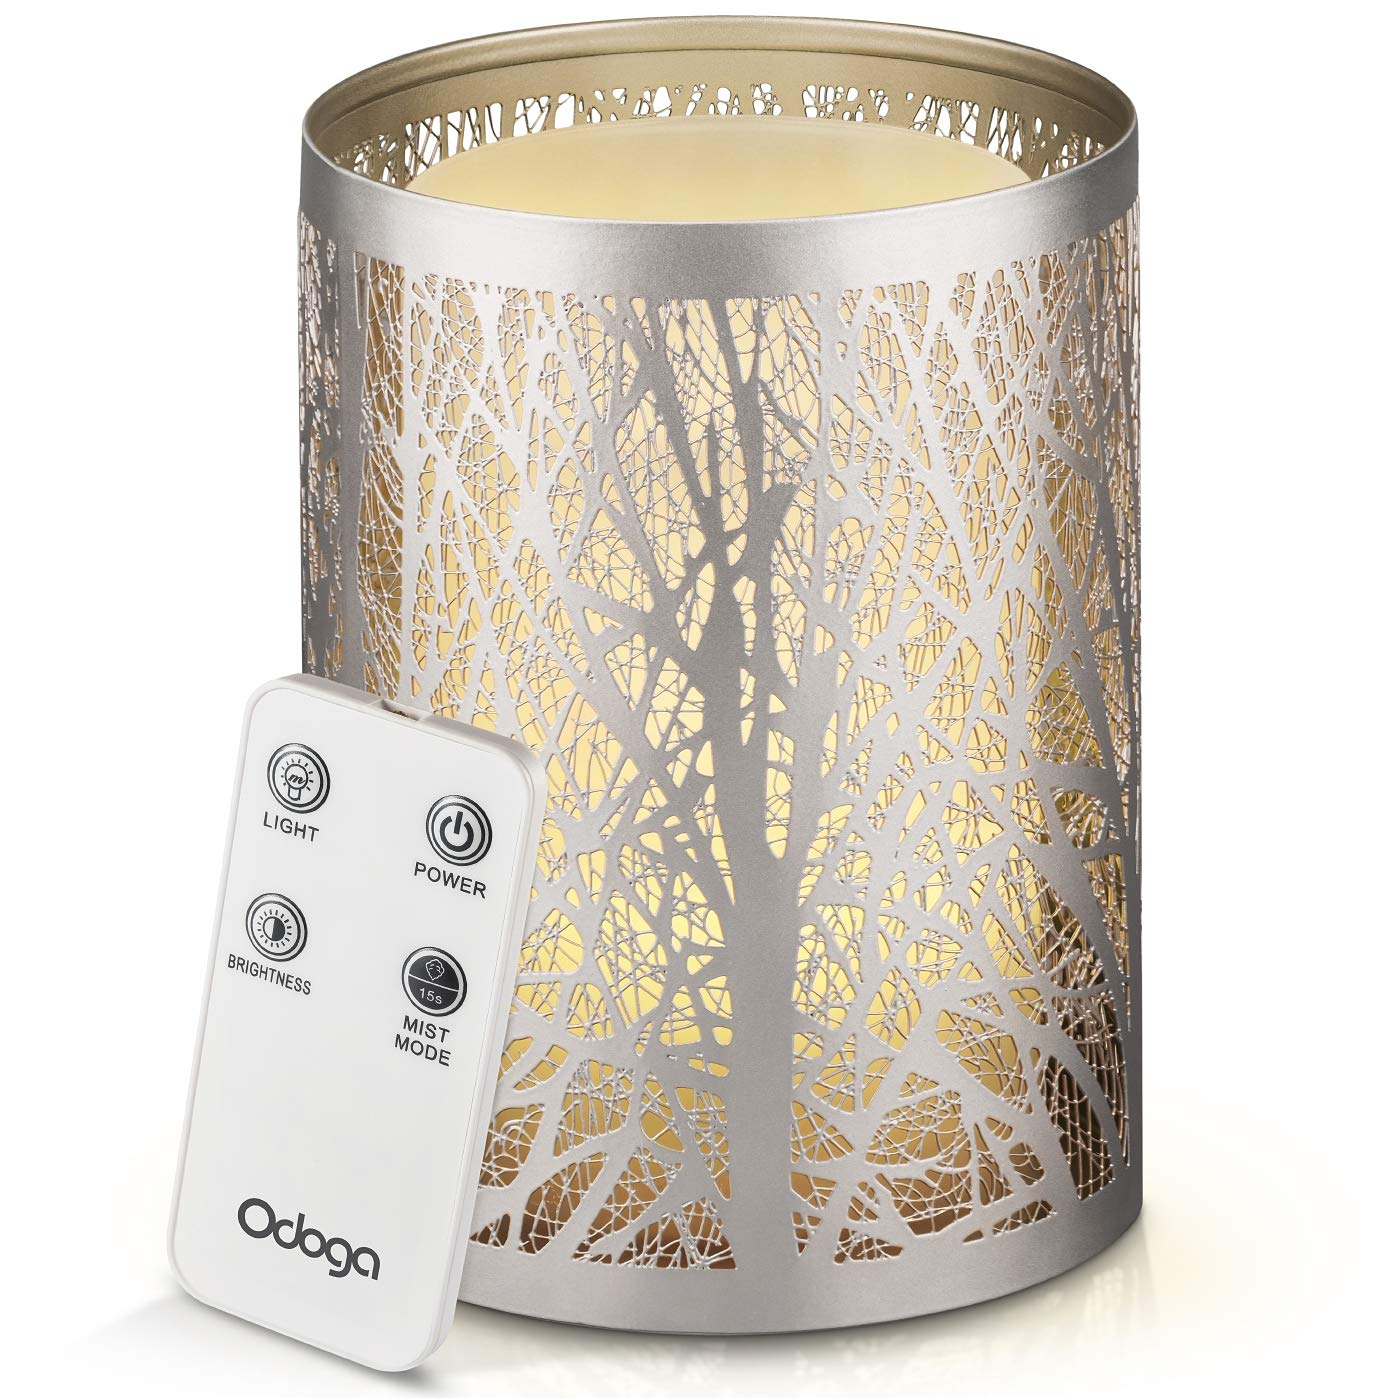 Odoga Essential Oil Diffuser, Premium Metal Aromatherapy Diffuser with Candle Light Effect & Remote Control, 100 ml